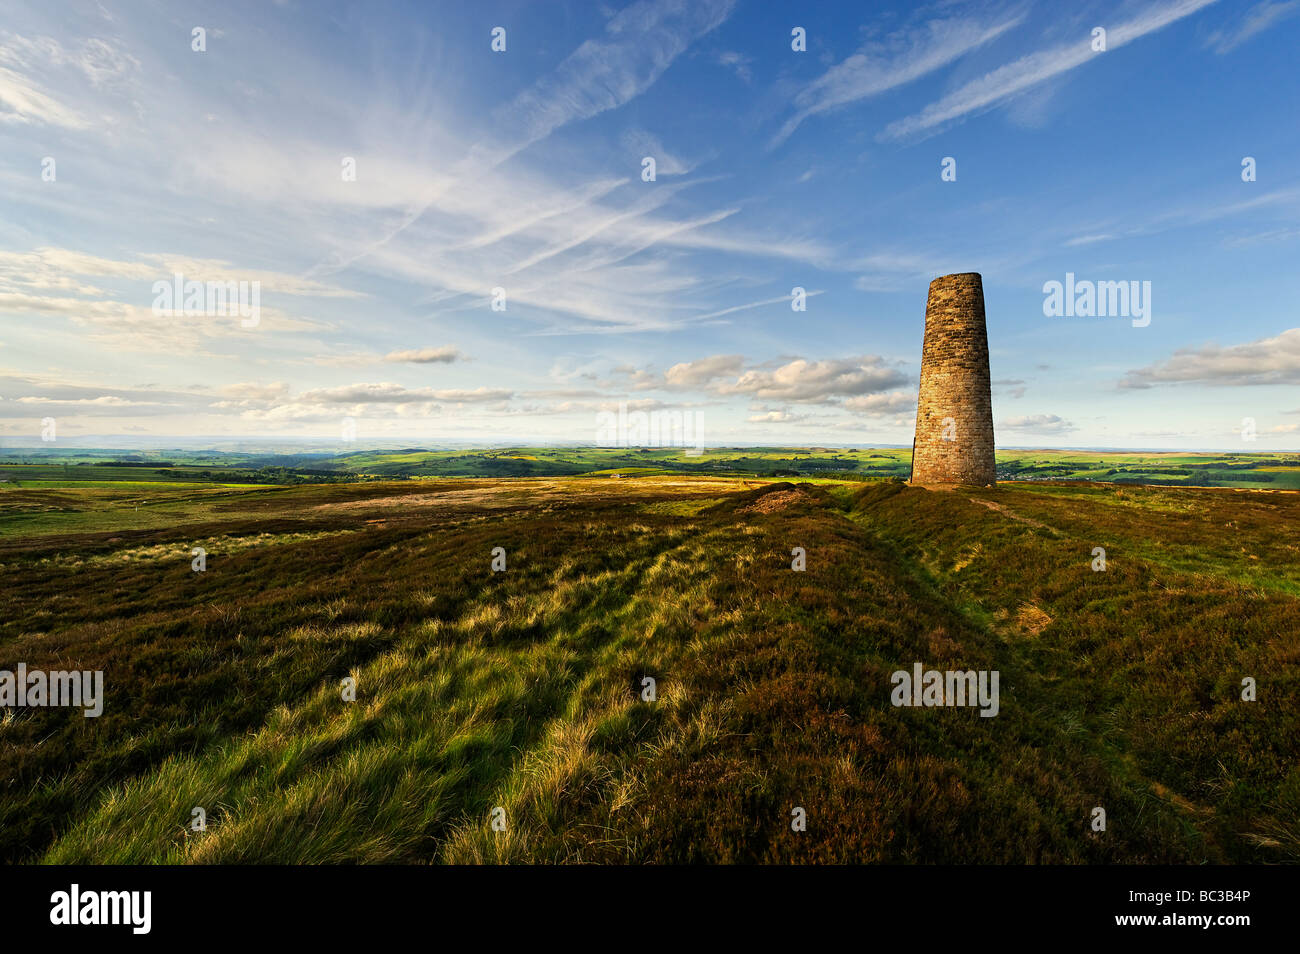 Disused chimney on moorland overlooking Allendale in North Pennines. Once used to vent fumes from lead smelting. - Stock Image